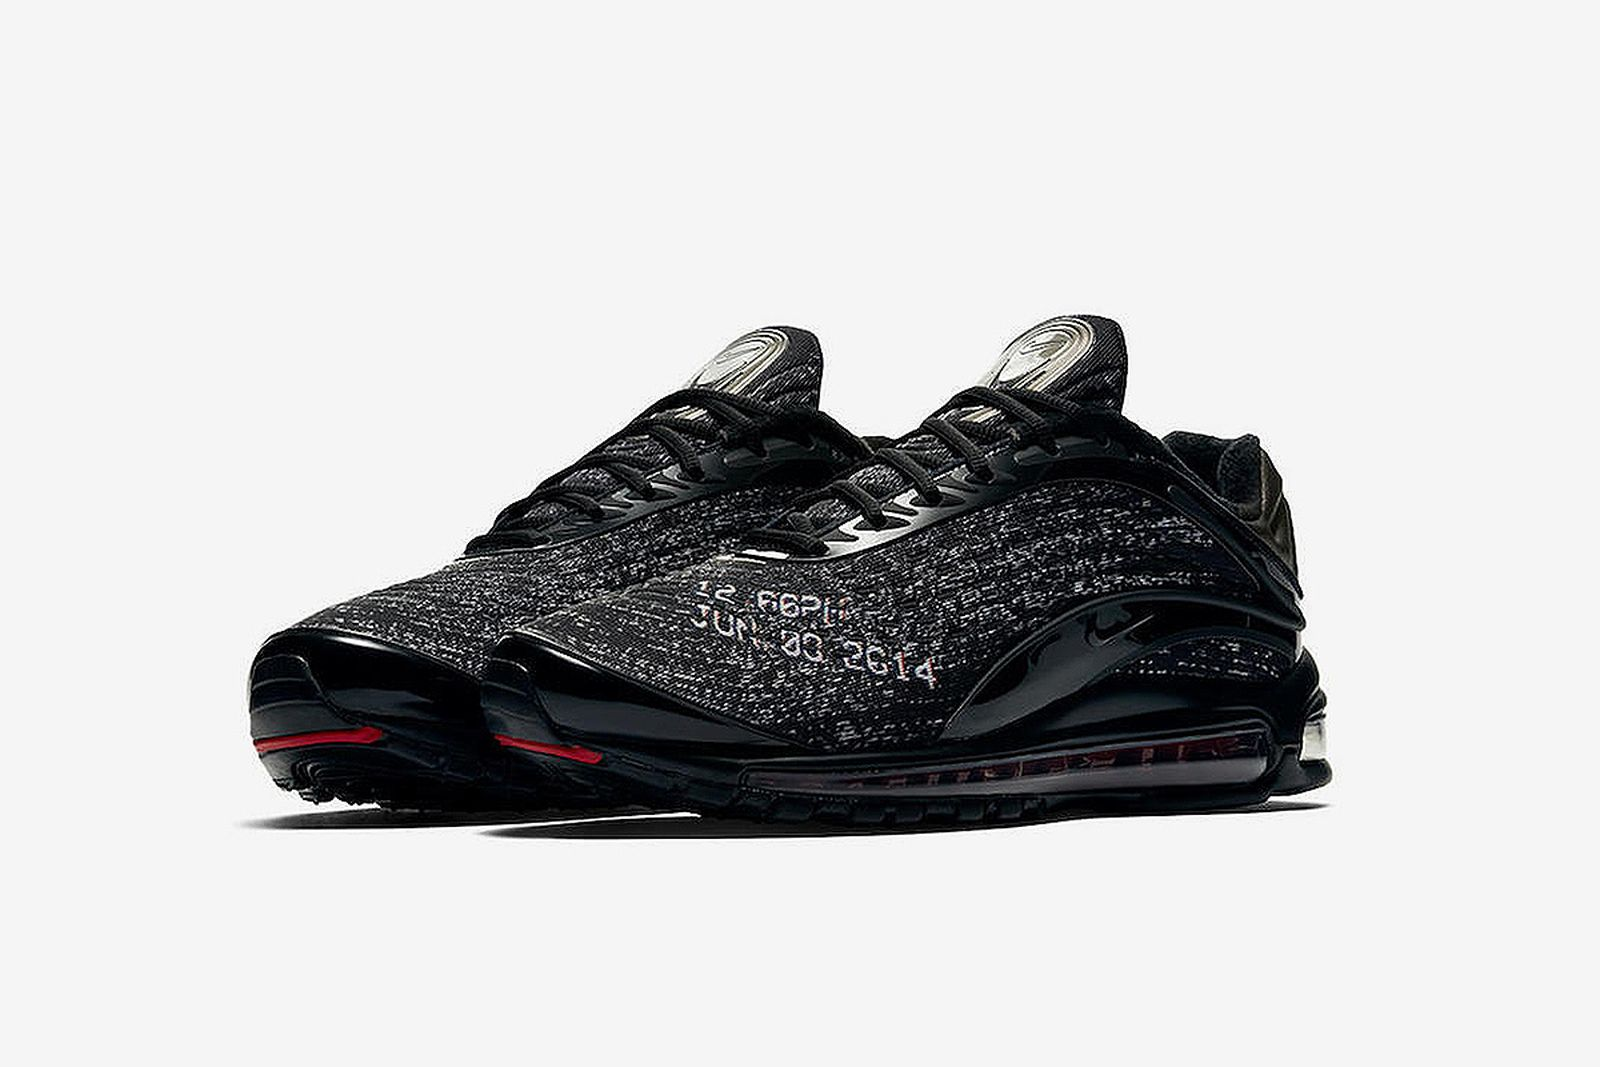 skepta nike air max deluxe release date price product